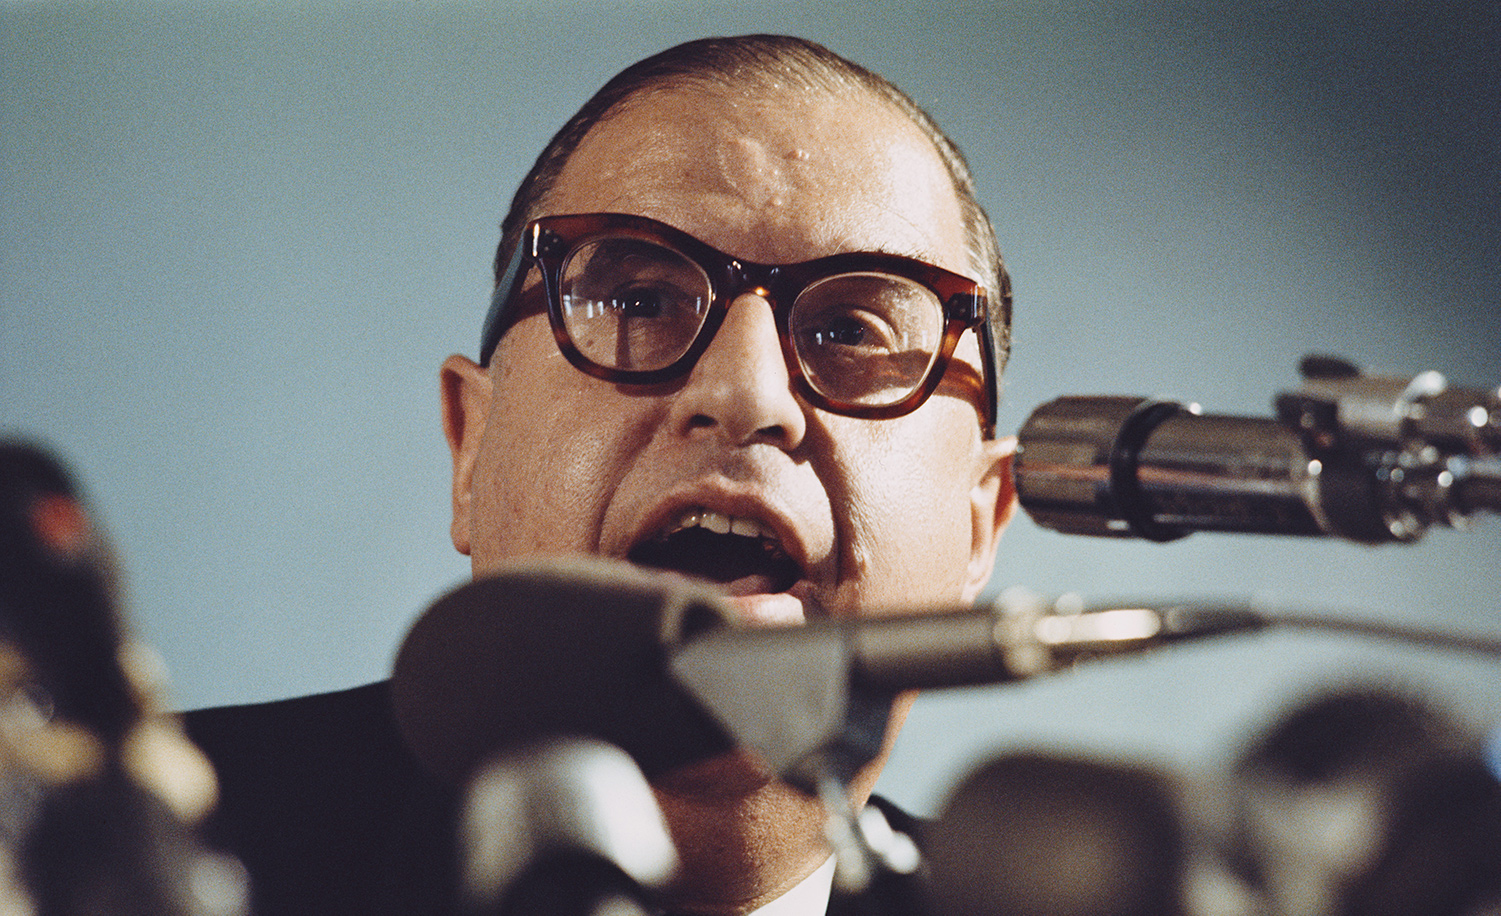 Abba Eban at a press conference in September 1970. Rolls Press/Popperfoto via Getty Images/Getty Images.